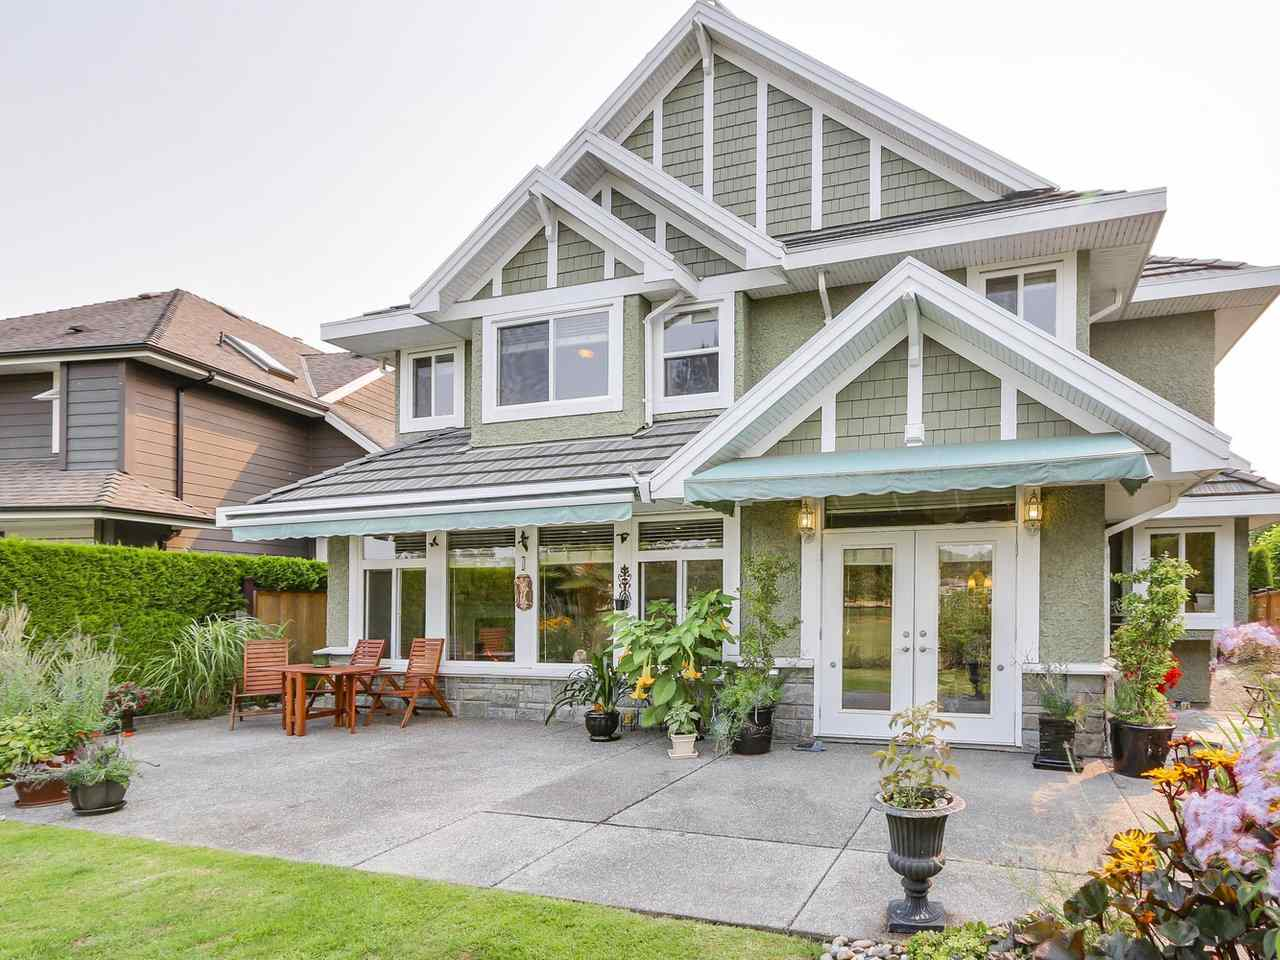 Detached at 5875 COVE LINK ROAD, Ladner, British Columbia. Image 1